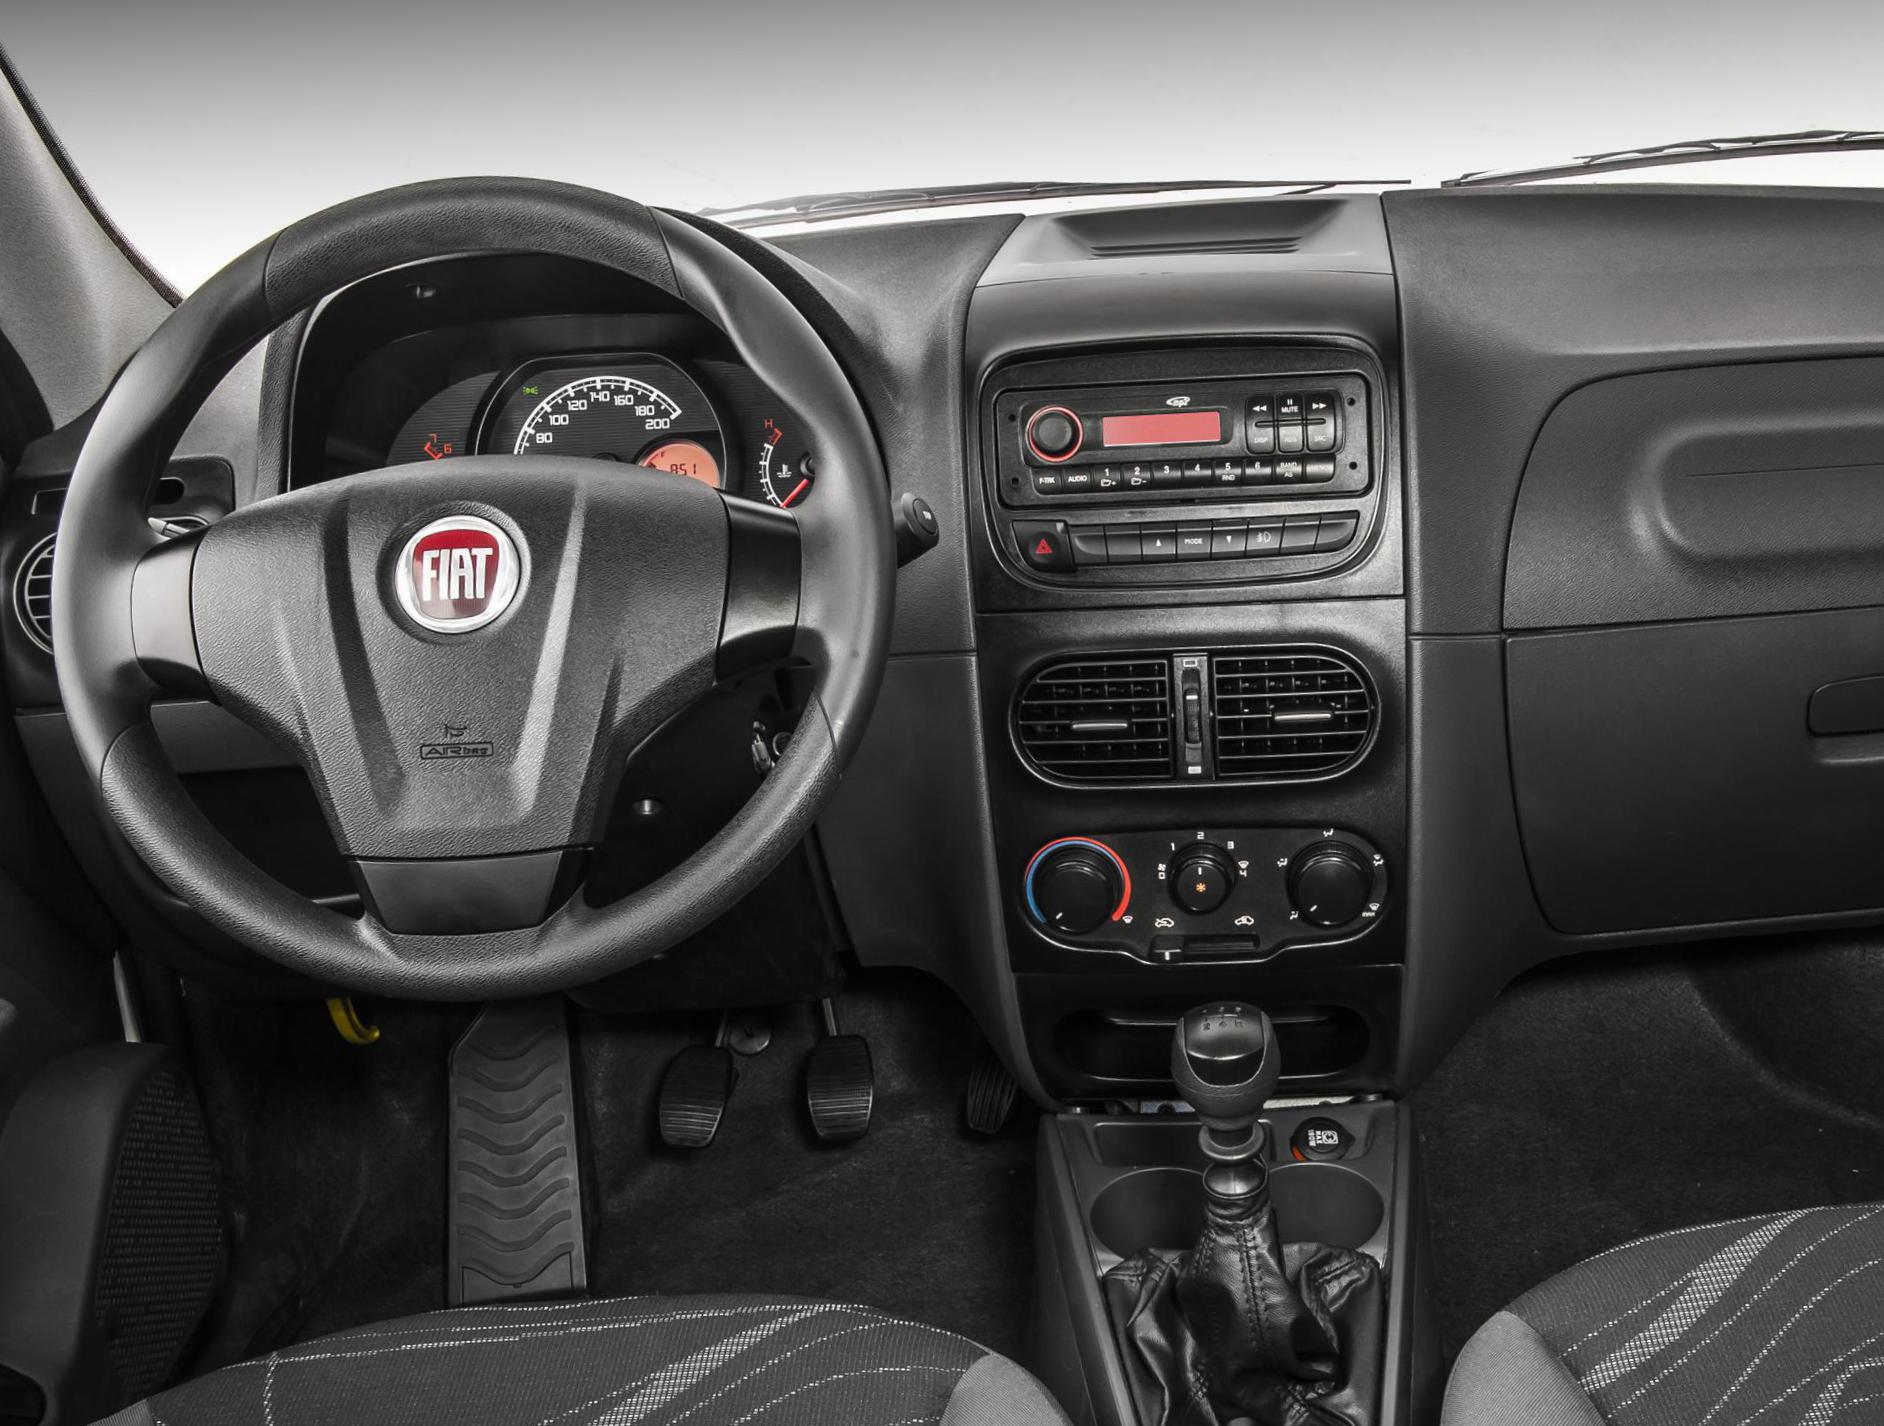 Strada Working CE Fiat Specifications 2014